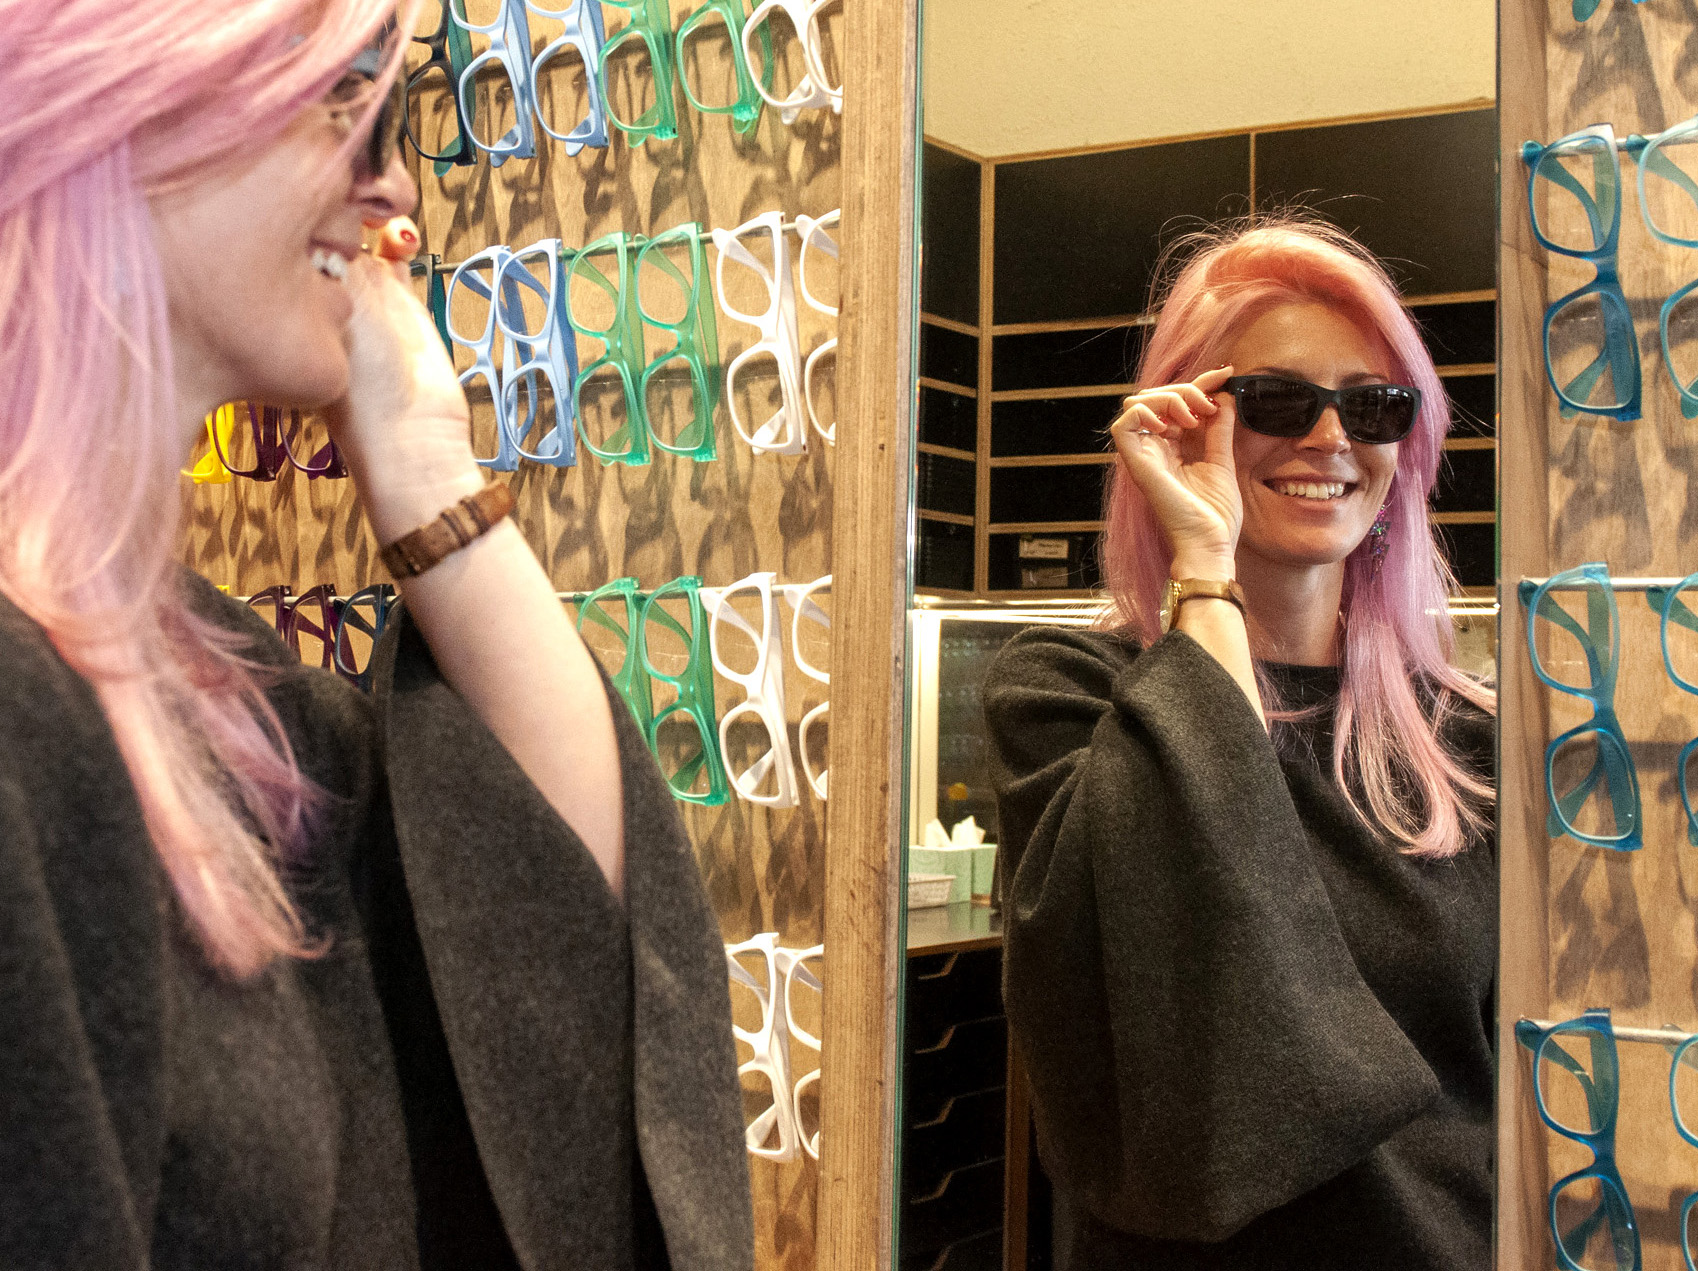 Ewelina Soroko tries on The Shampoo Collection sunglasses at Dresden Newtown